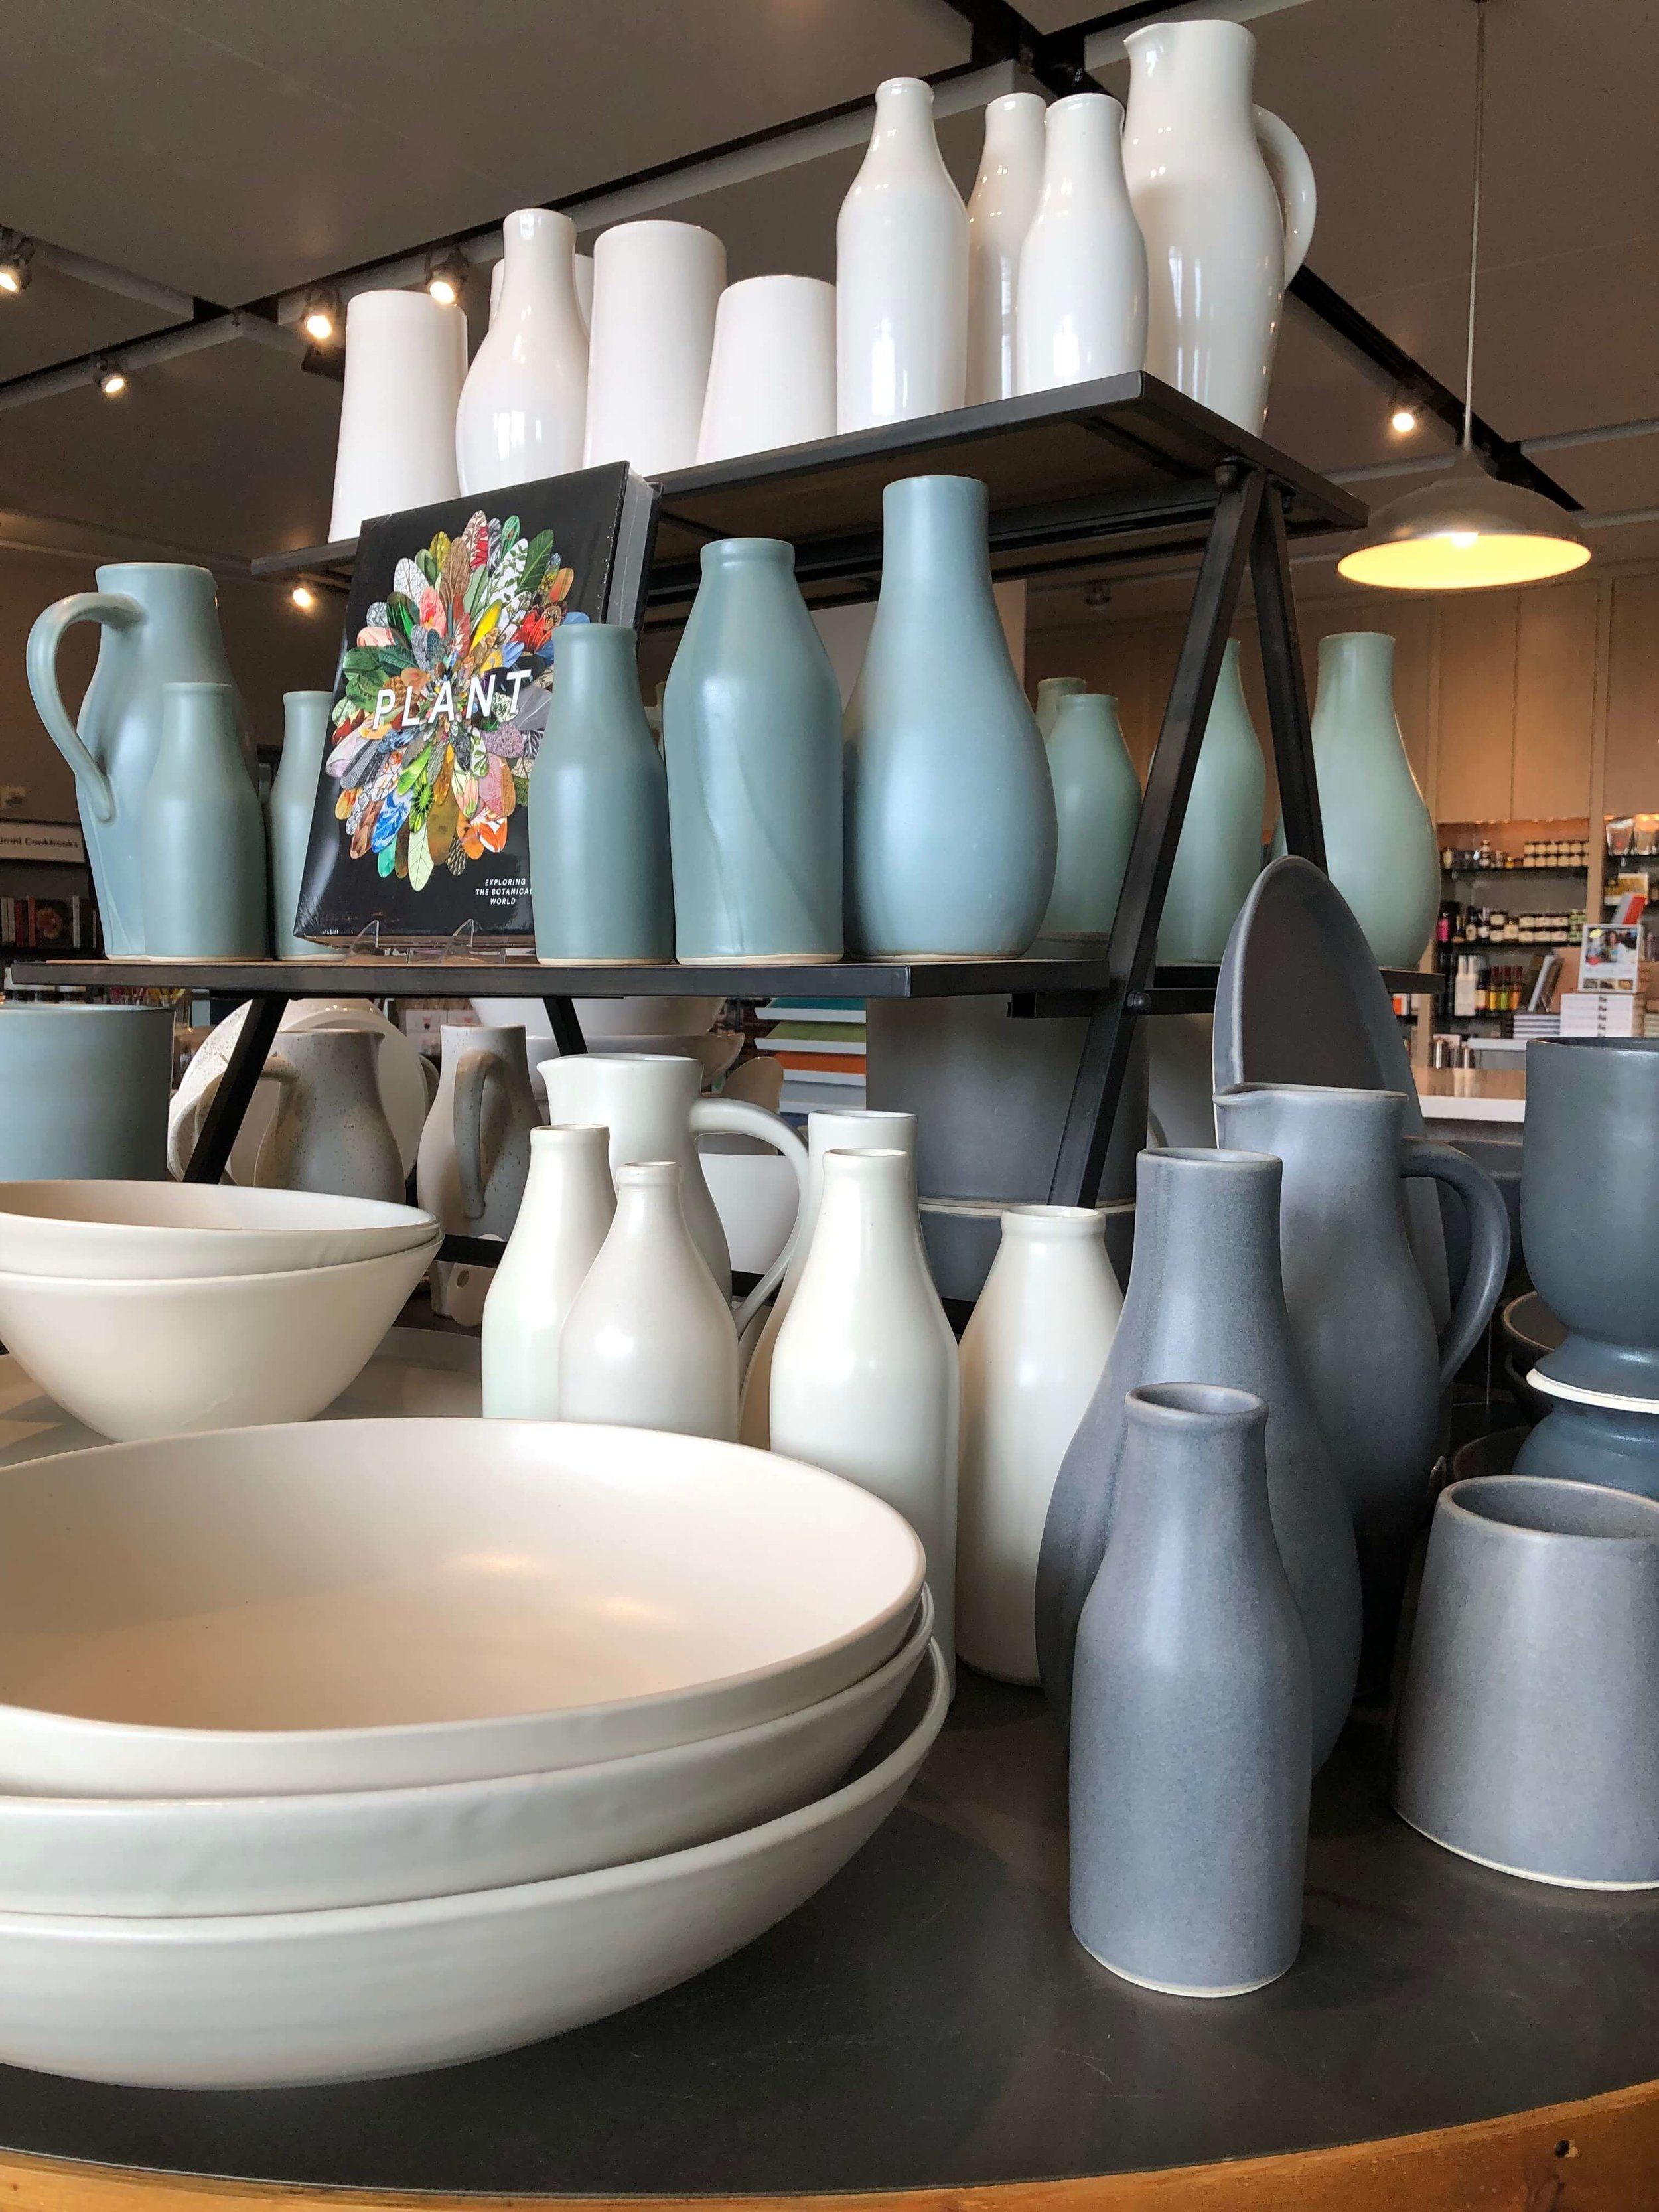 New pottery from a local artist, Amanda Wright, is for sale in the CIA Copia gift shop.